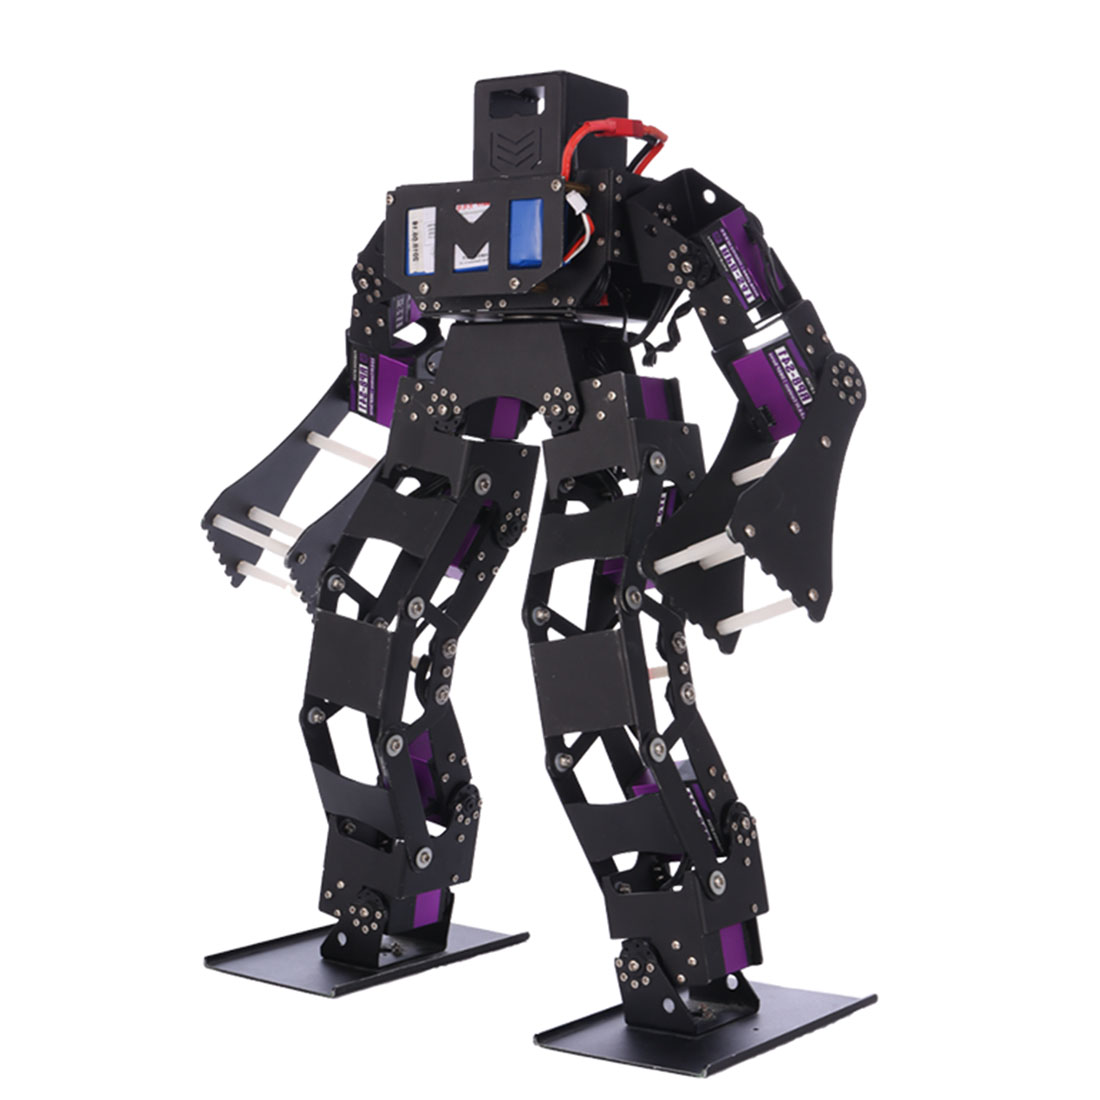 Programmable Biped Robot Boxing Competition Robot Toy DIY Stem Robot (Finished Product)